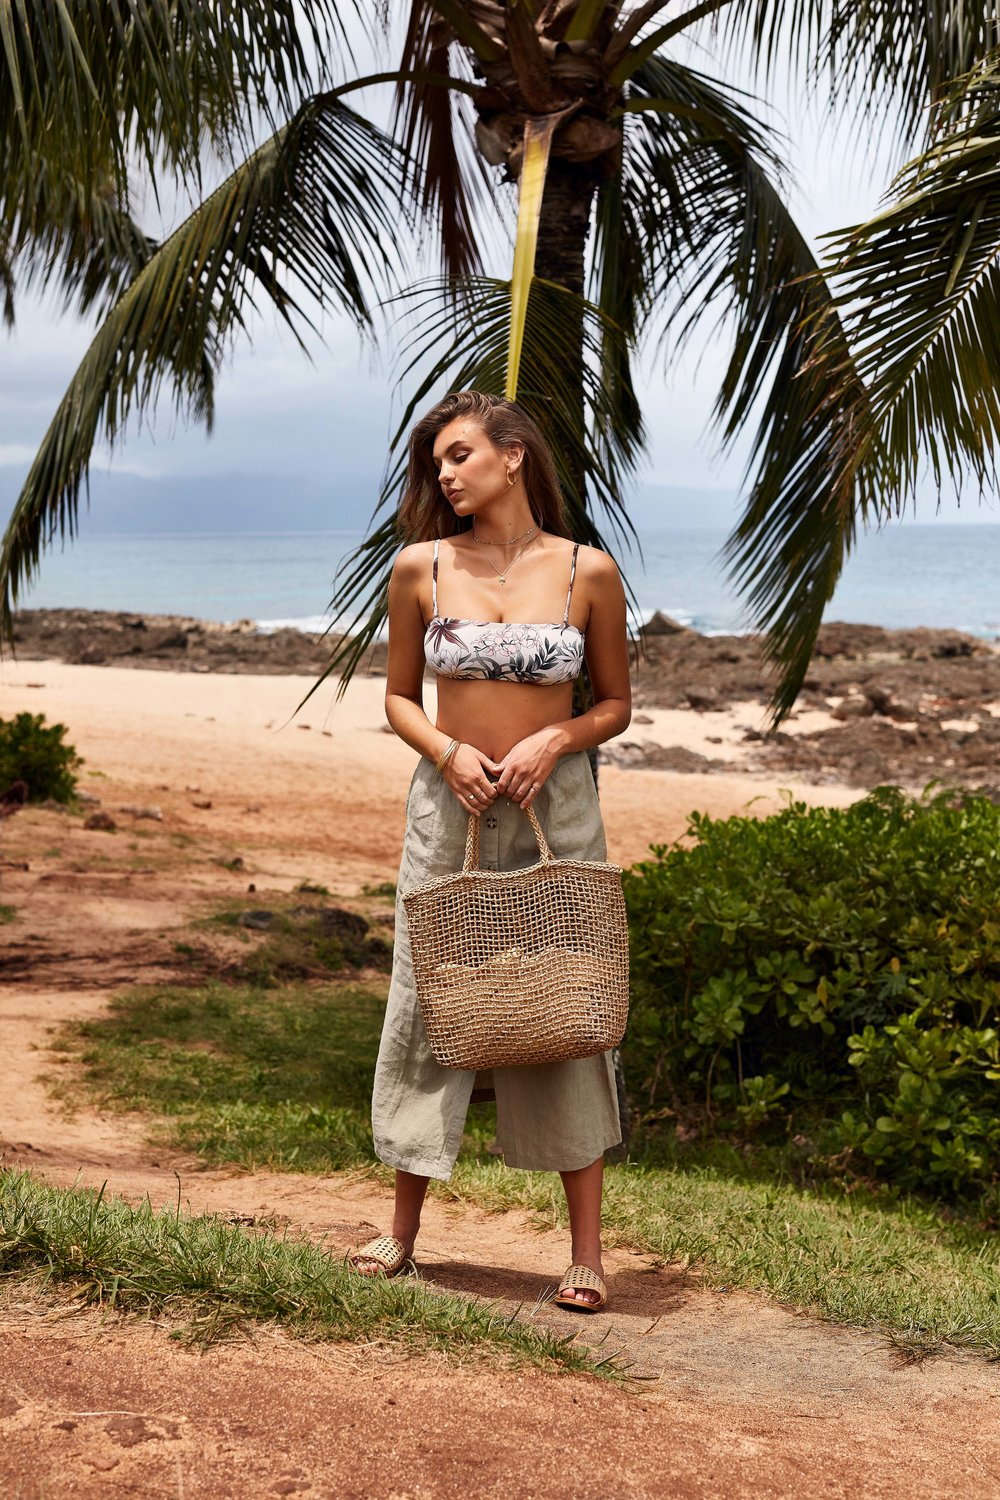 Bermuda Bandeau Top Sand & Newport Skirt Sage with Bangalow Beach Bag.jpg